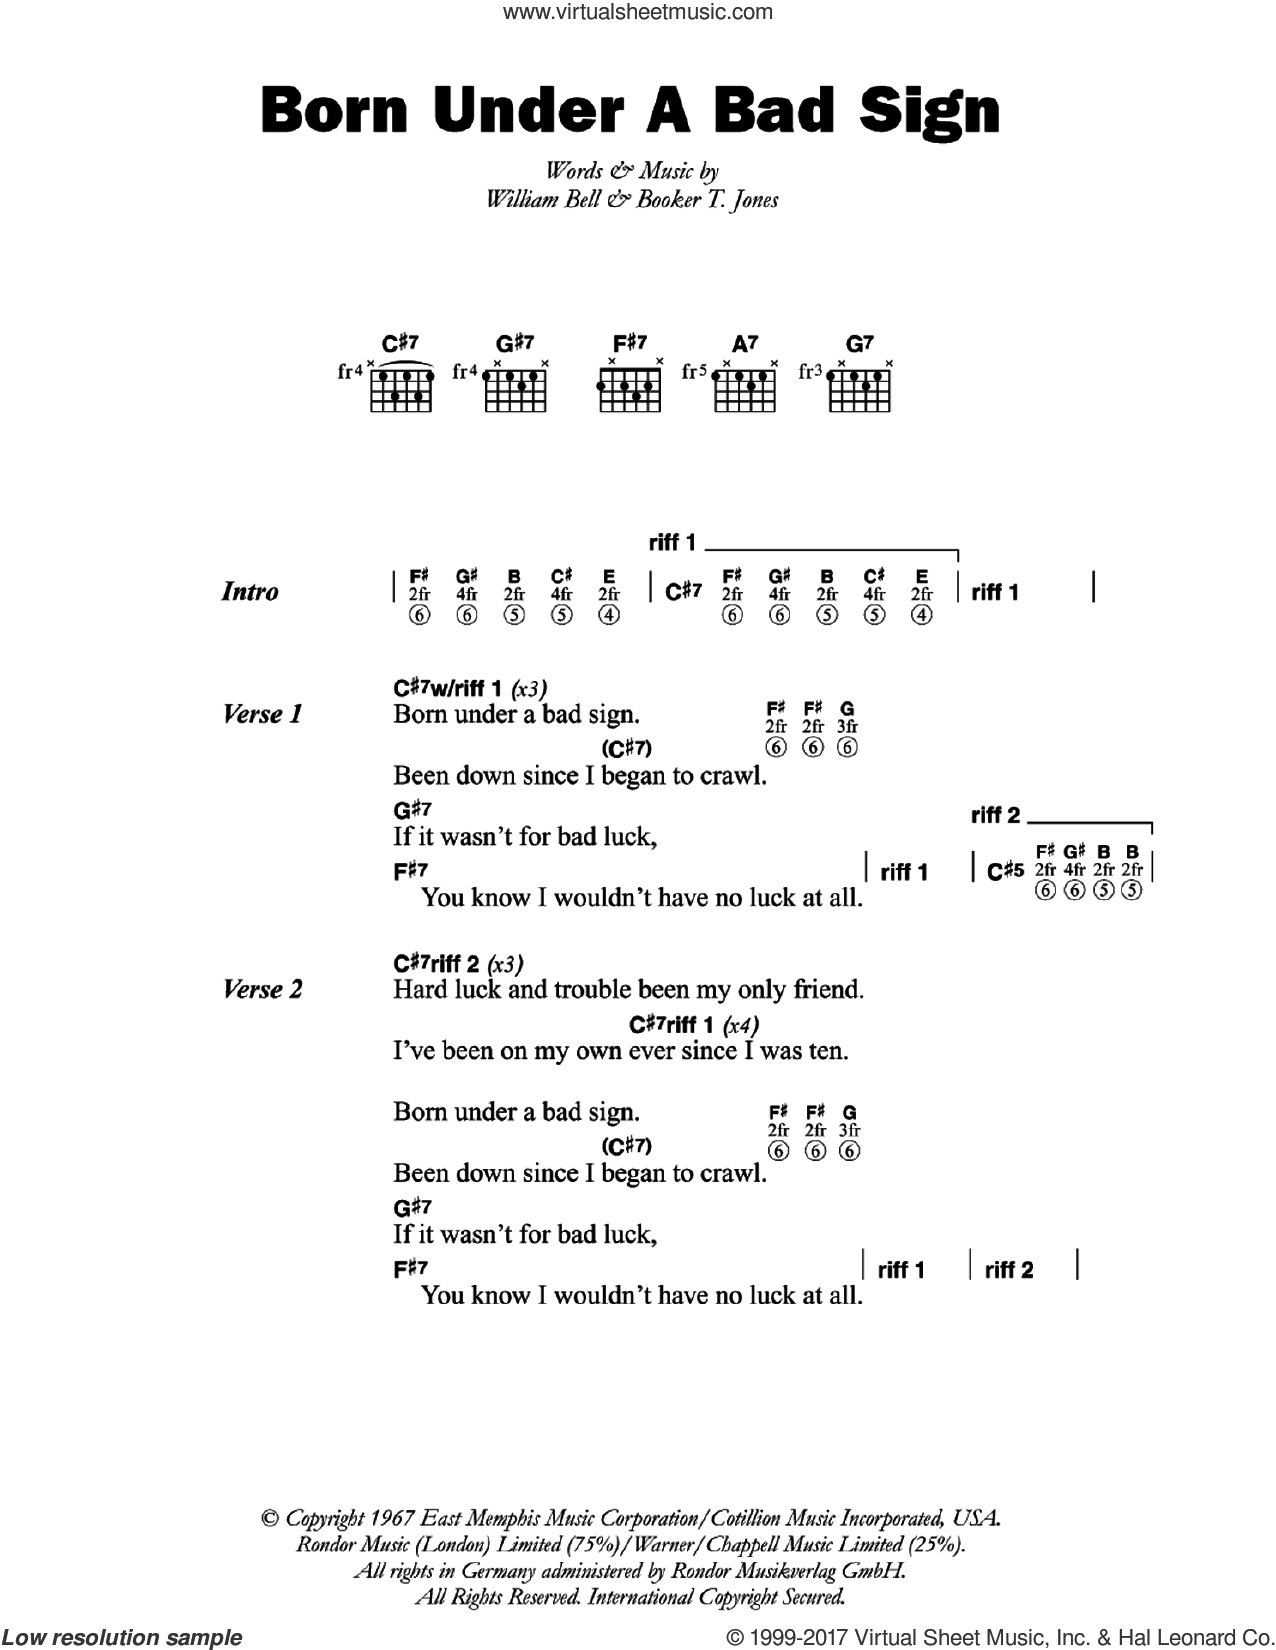 Born Under A Bad Sign sheet music for guitar (chords) by Albert King, Booker T. Jones and William Bell, intermediate skill level